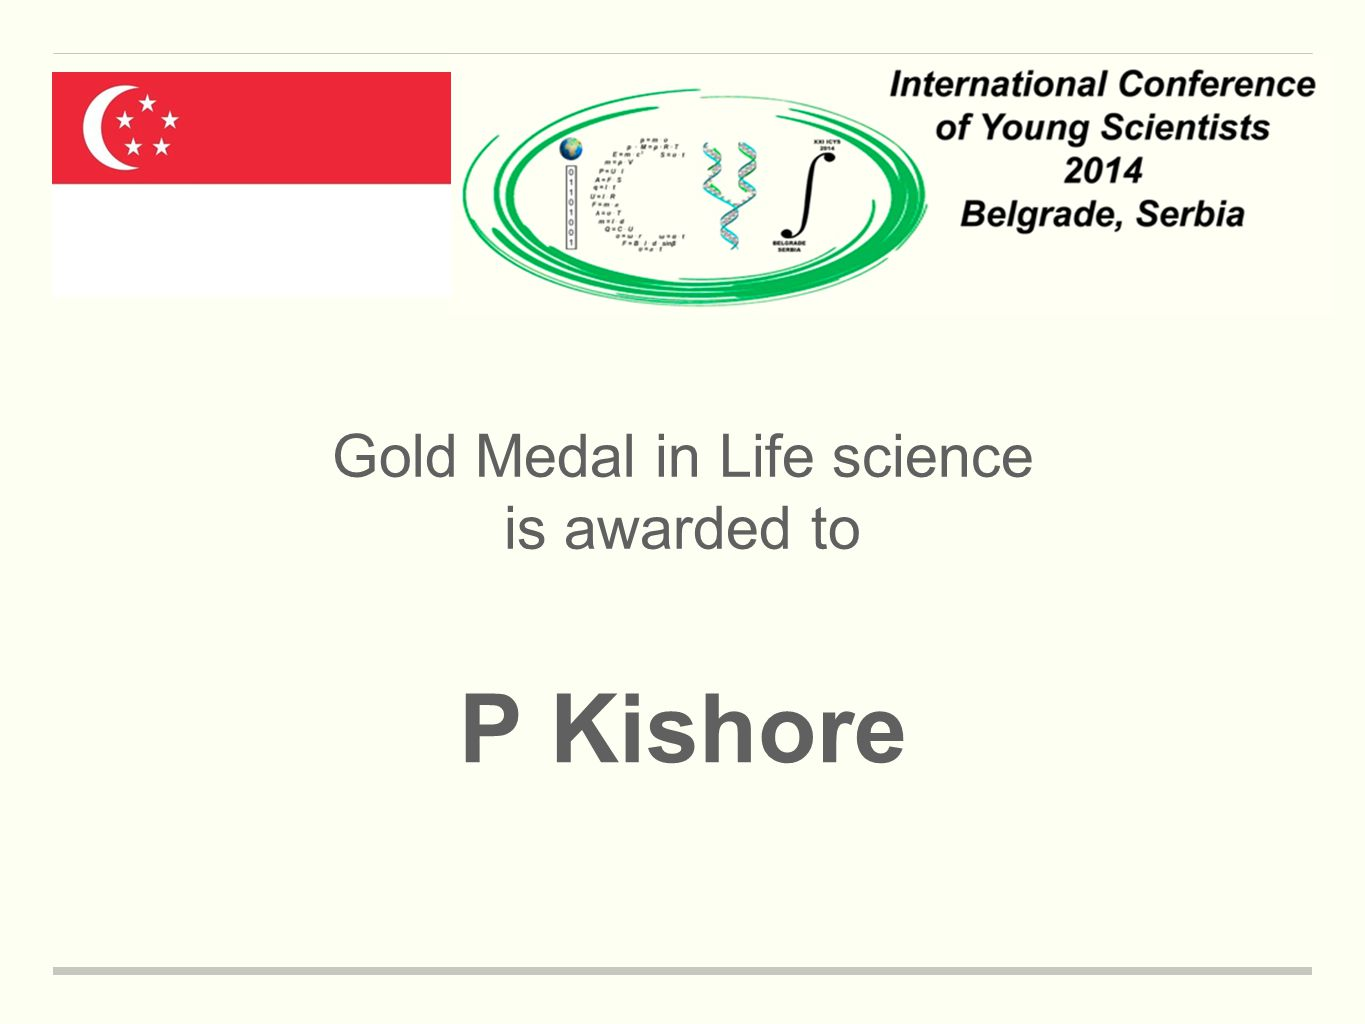 Gold Medal in Life science is awarded to P Kishore